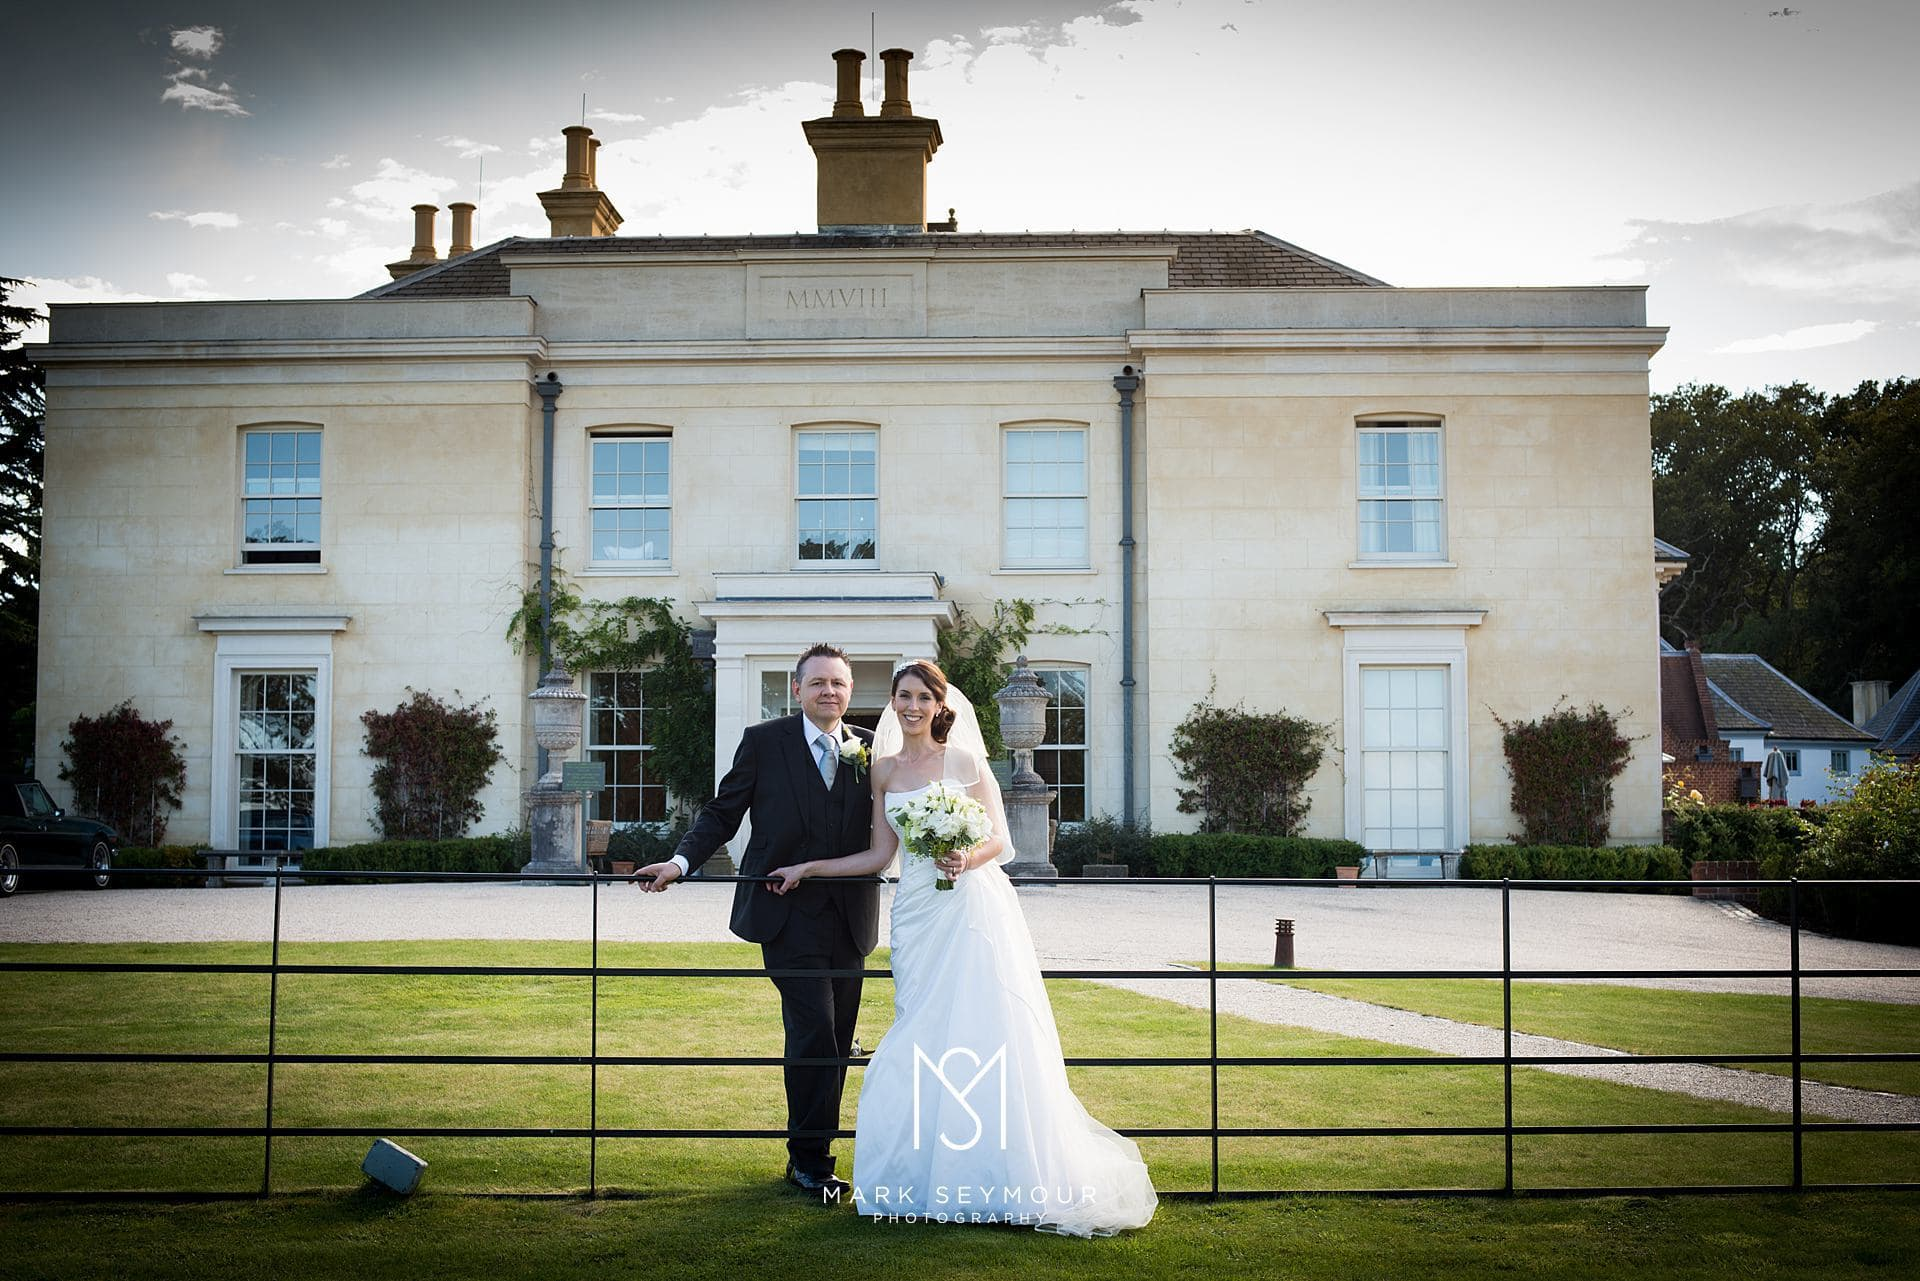 Bride and Groom at The Limewood Hotel